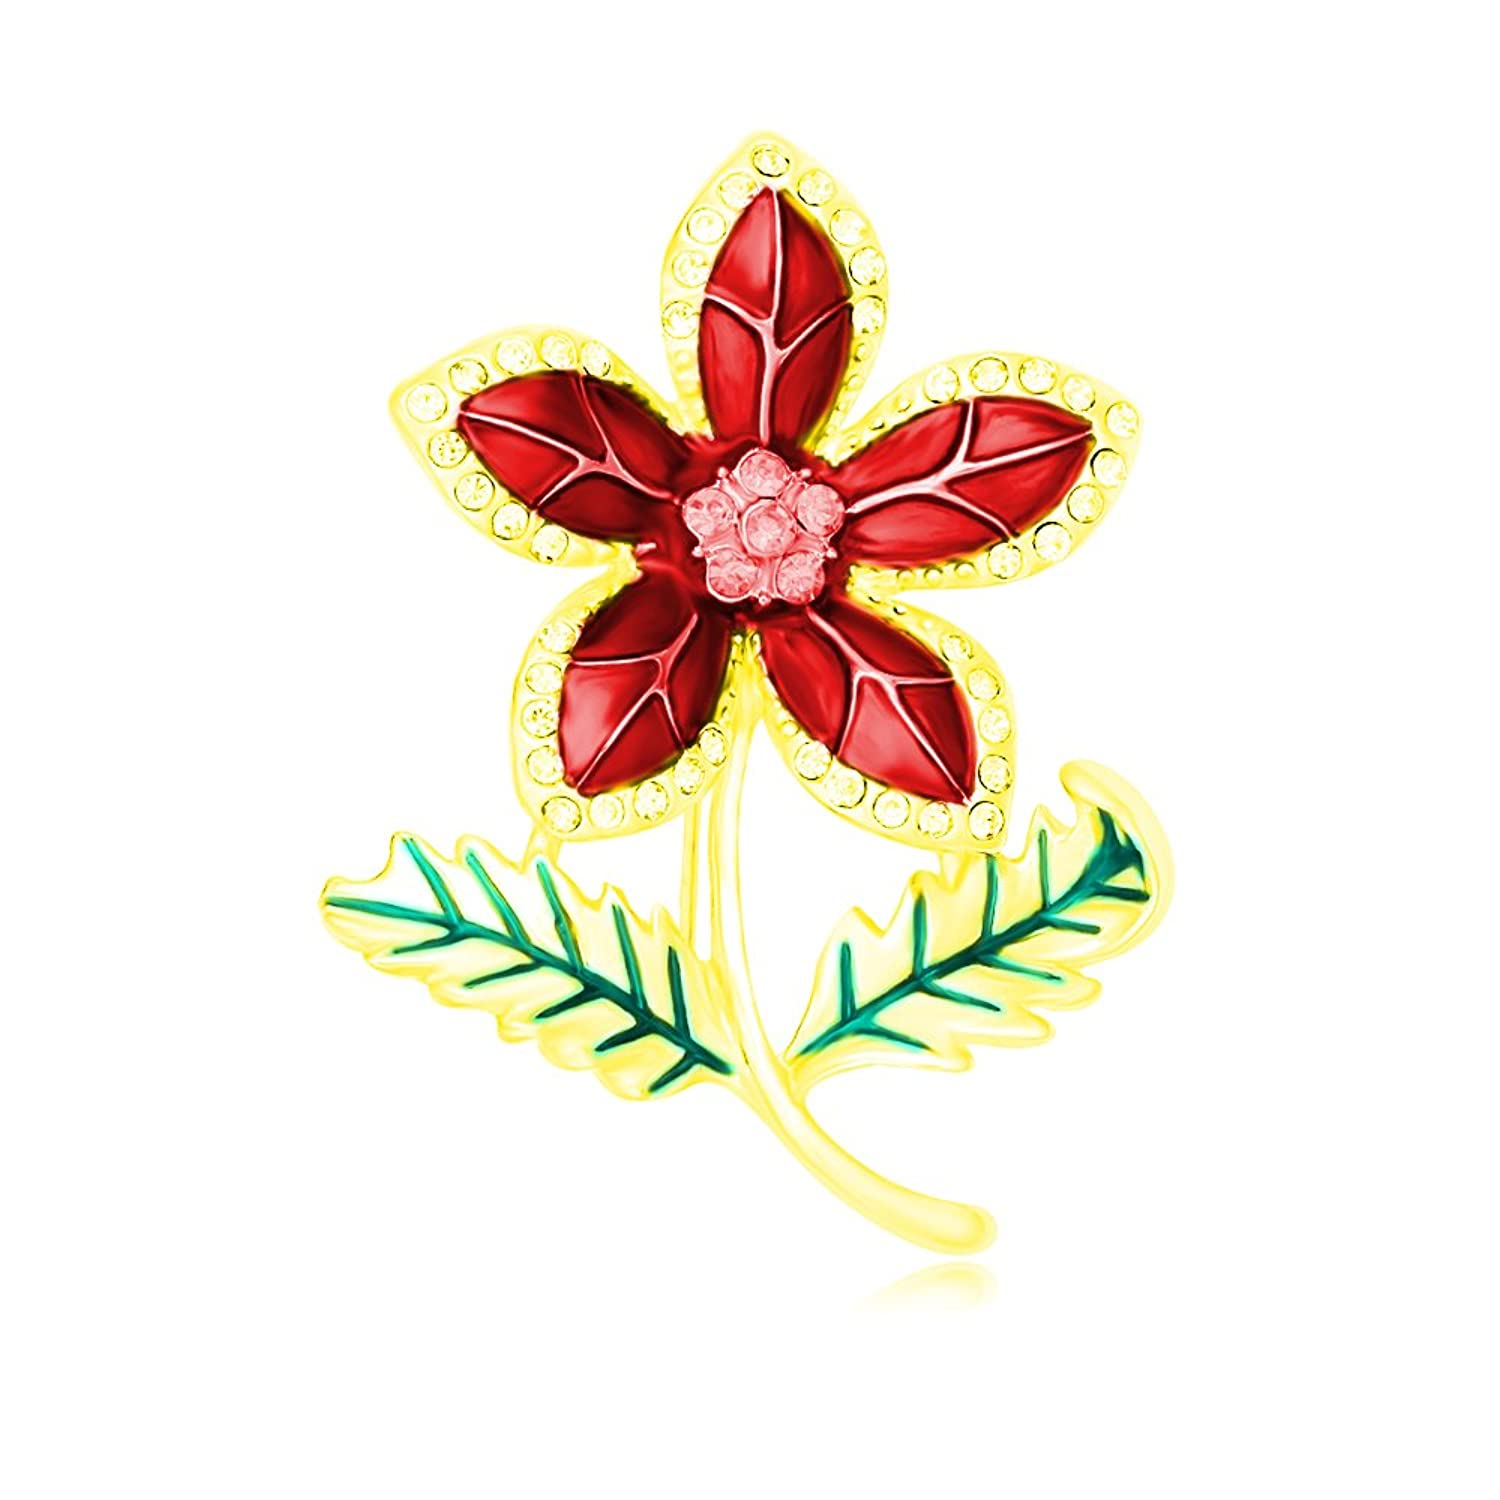 PANGRUI Exquisite Red Enamel Crystal Five-petaled Flower Brooch Pin with Two Green Enamel Leaves save more